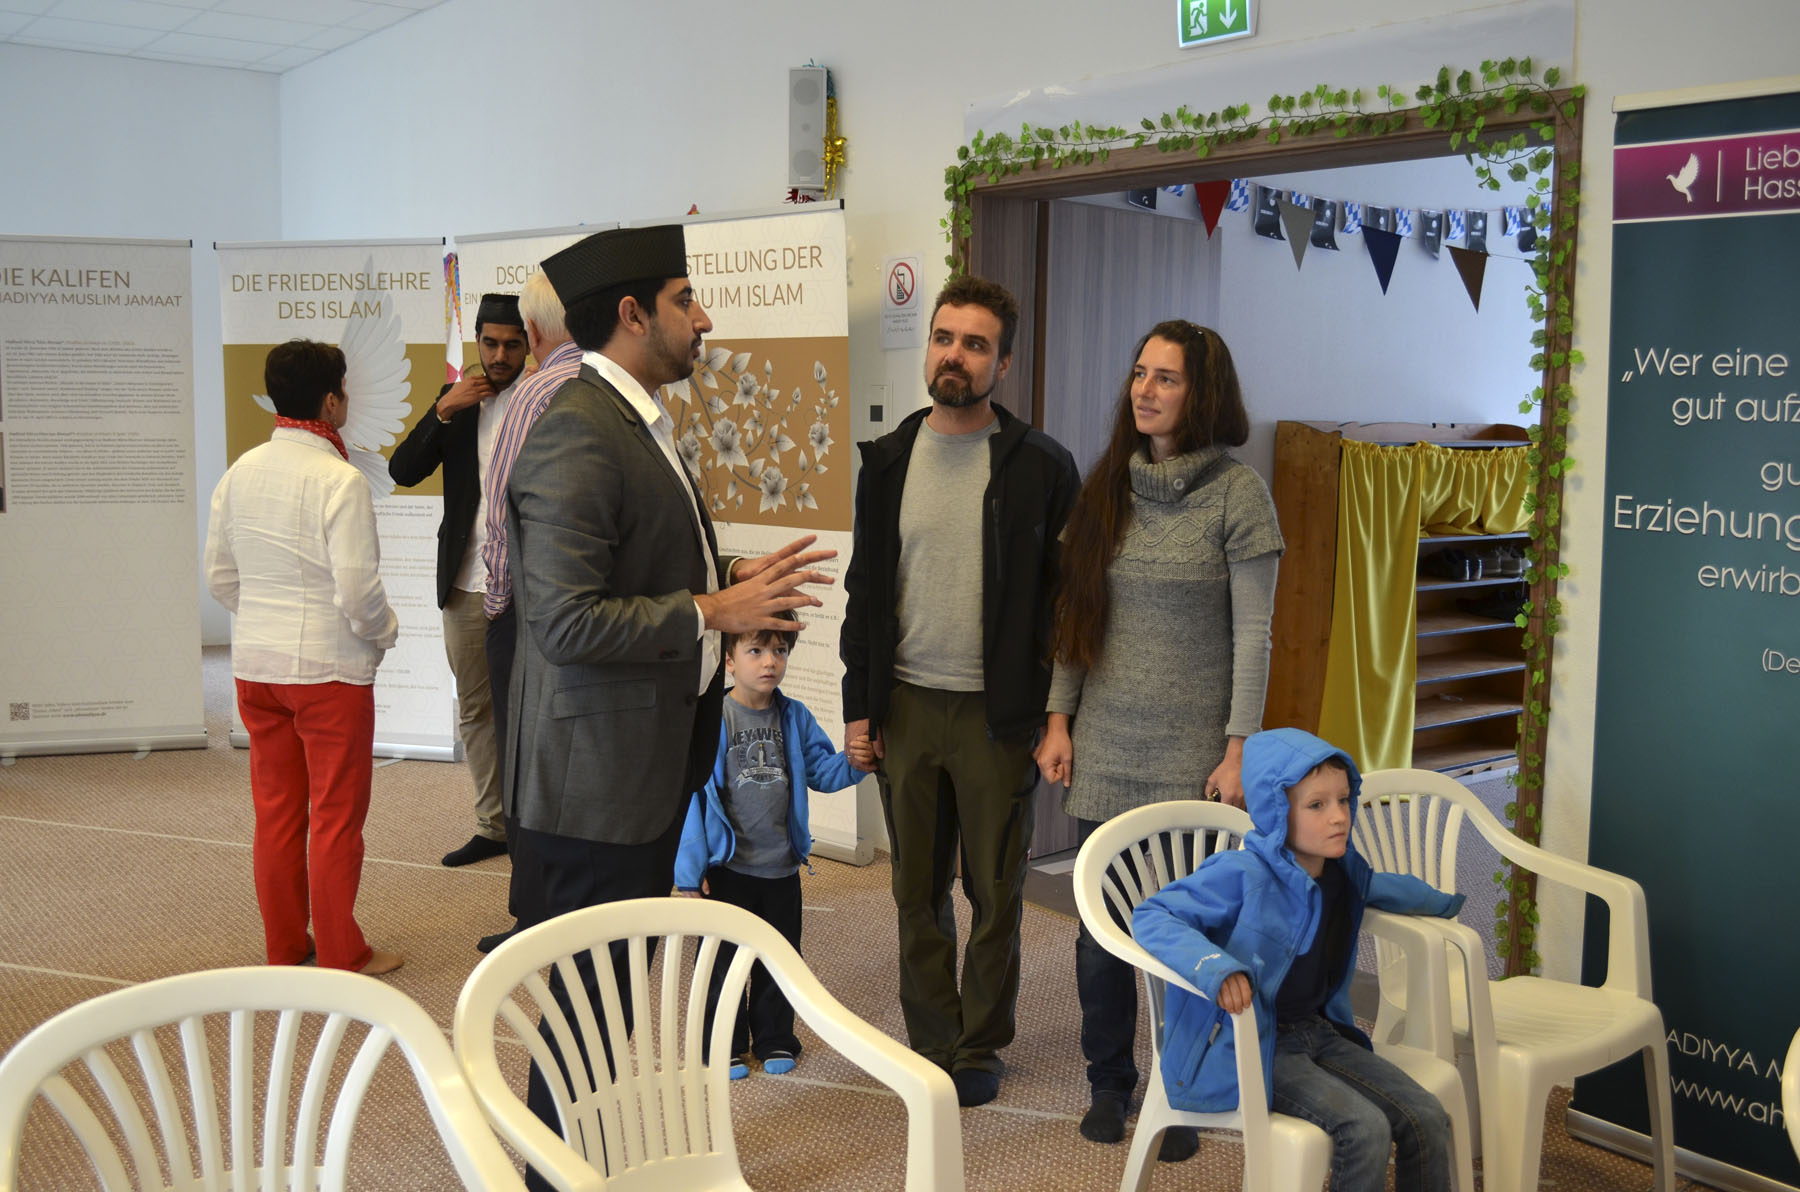 freising muslim Meet bavaria muslim german men for dating and find your true love at muslimacom sign up today and browse profiles of bavaria muslim german men for dating for free.